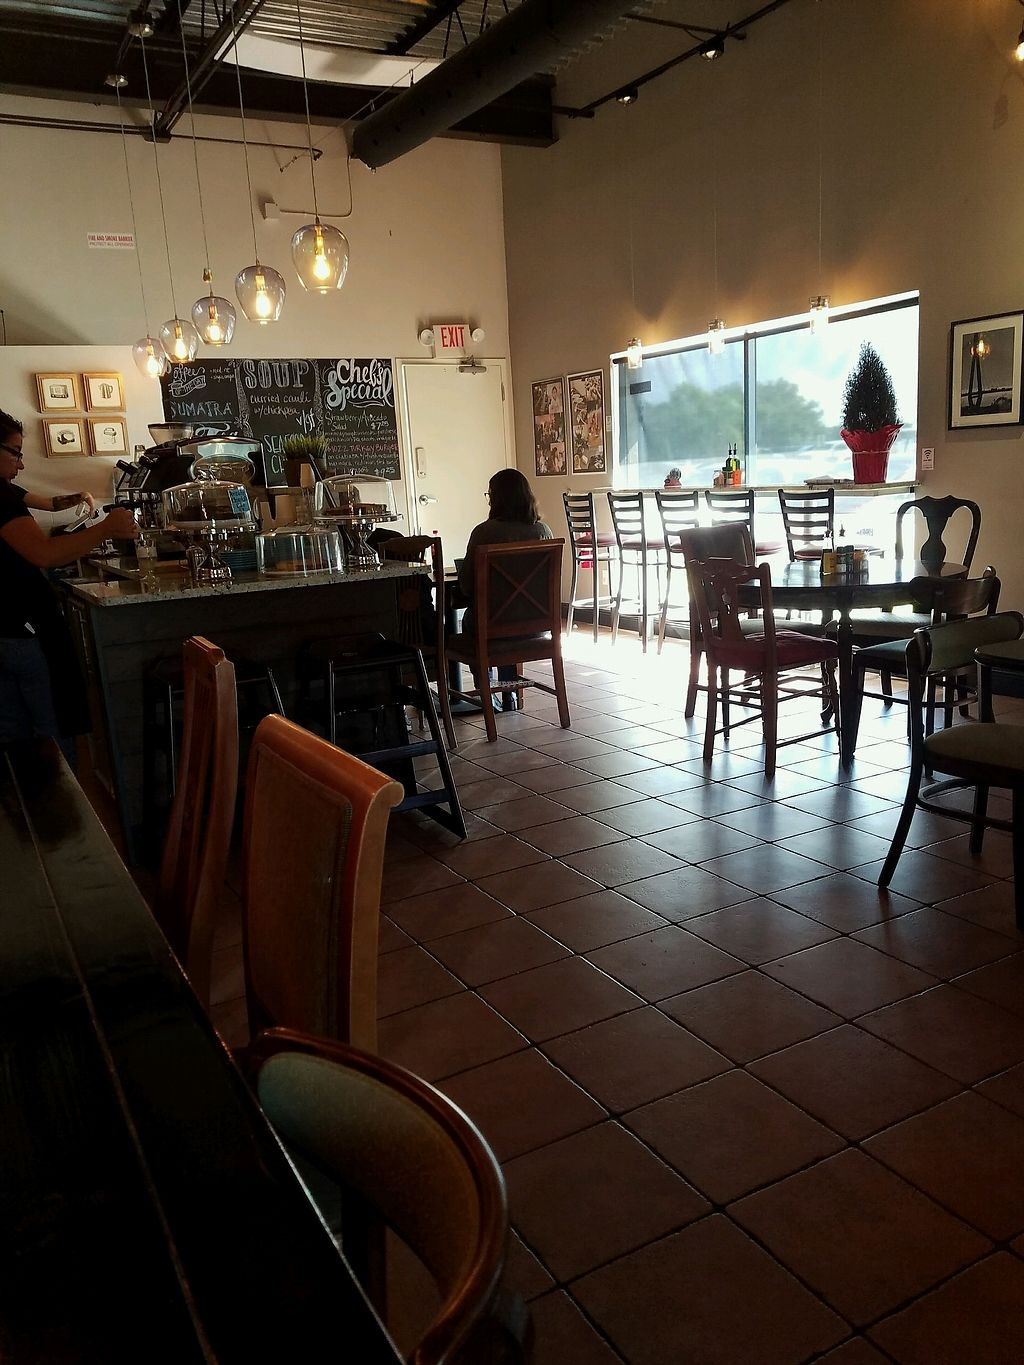 """Photo of Cafe YOU  by <a href=""""/members/profile/madtom"""">madtom</a> <br/>Cafe YOU <br/> December 21, 2017  - <a href='/contact/abuse/image/79521/337836'>Report</a>"""